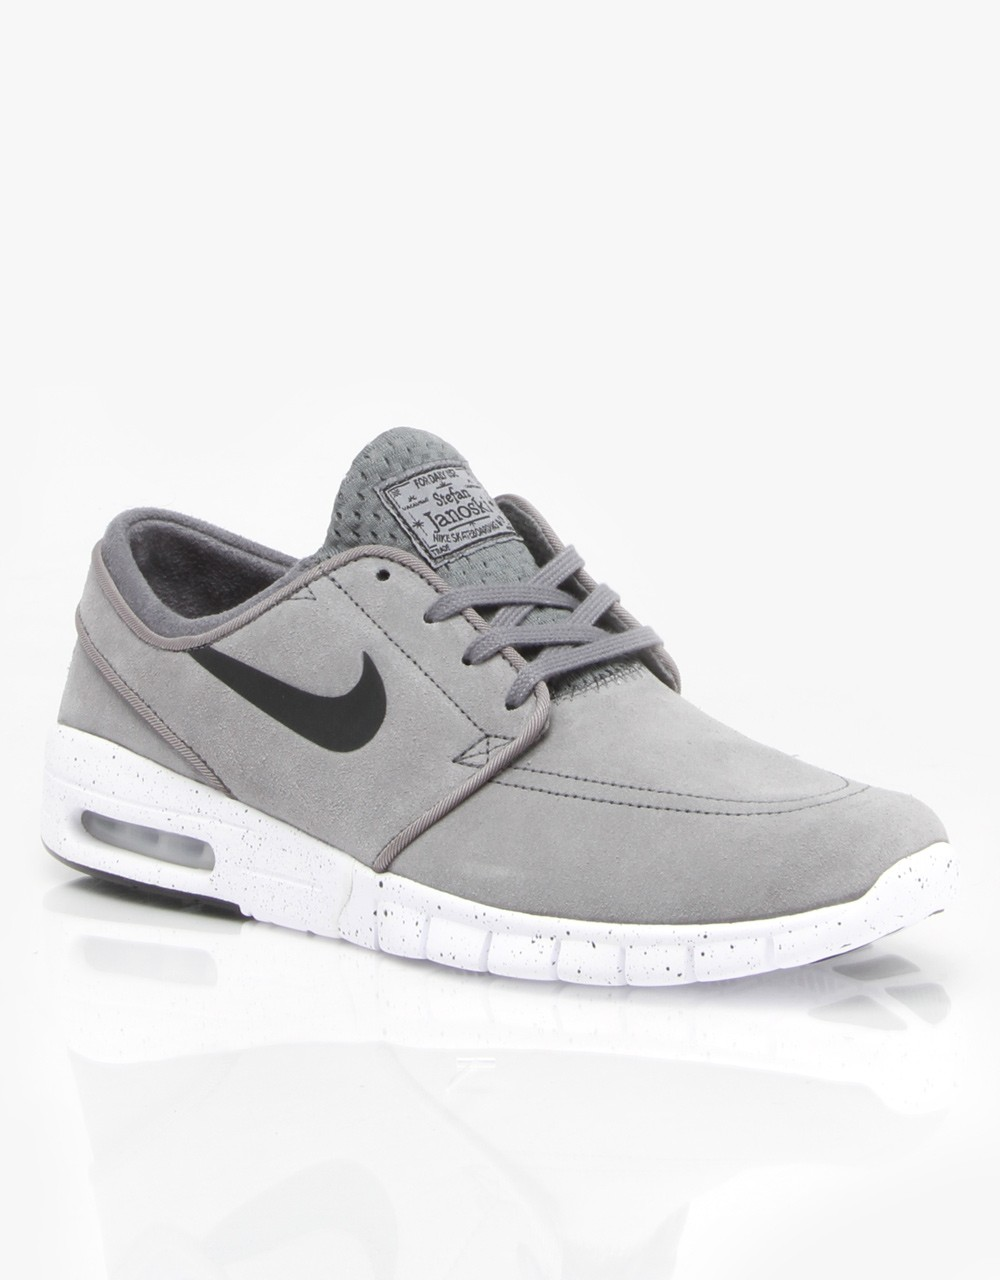 sports shoes d7e82 eac4f best sb nike shoes janoski air max suede